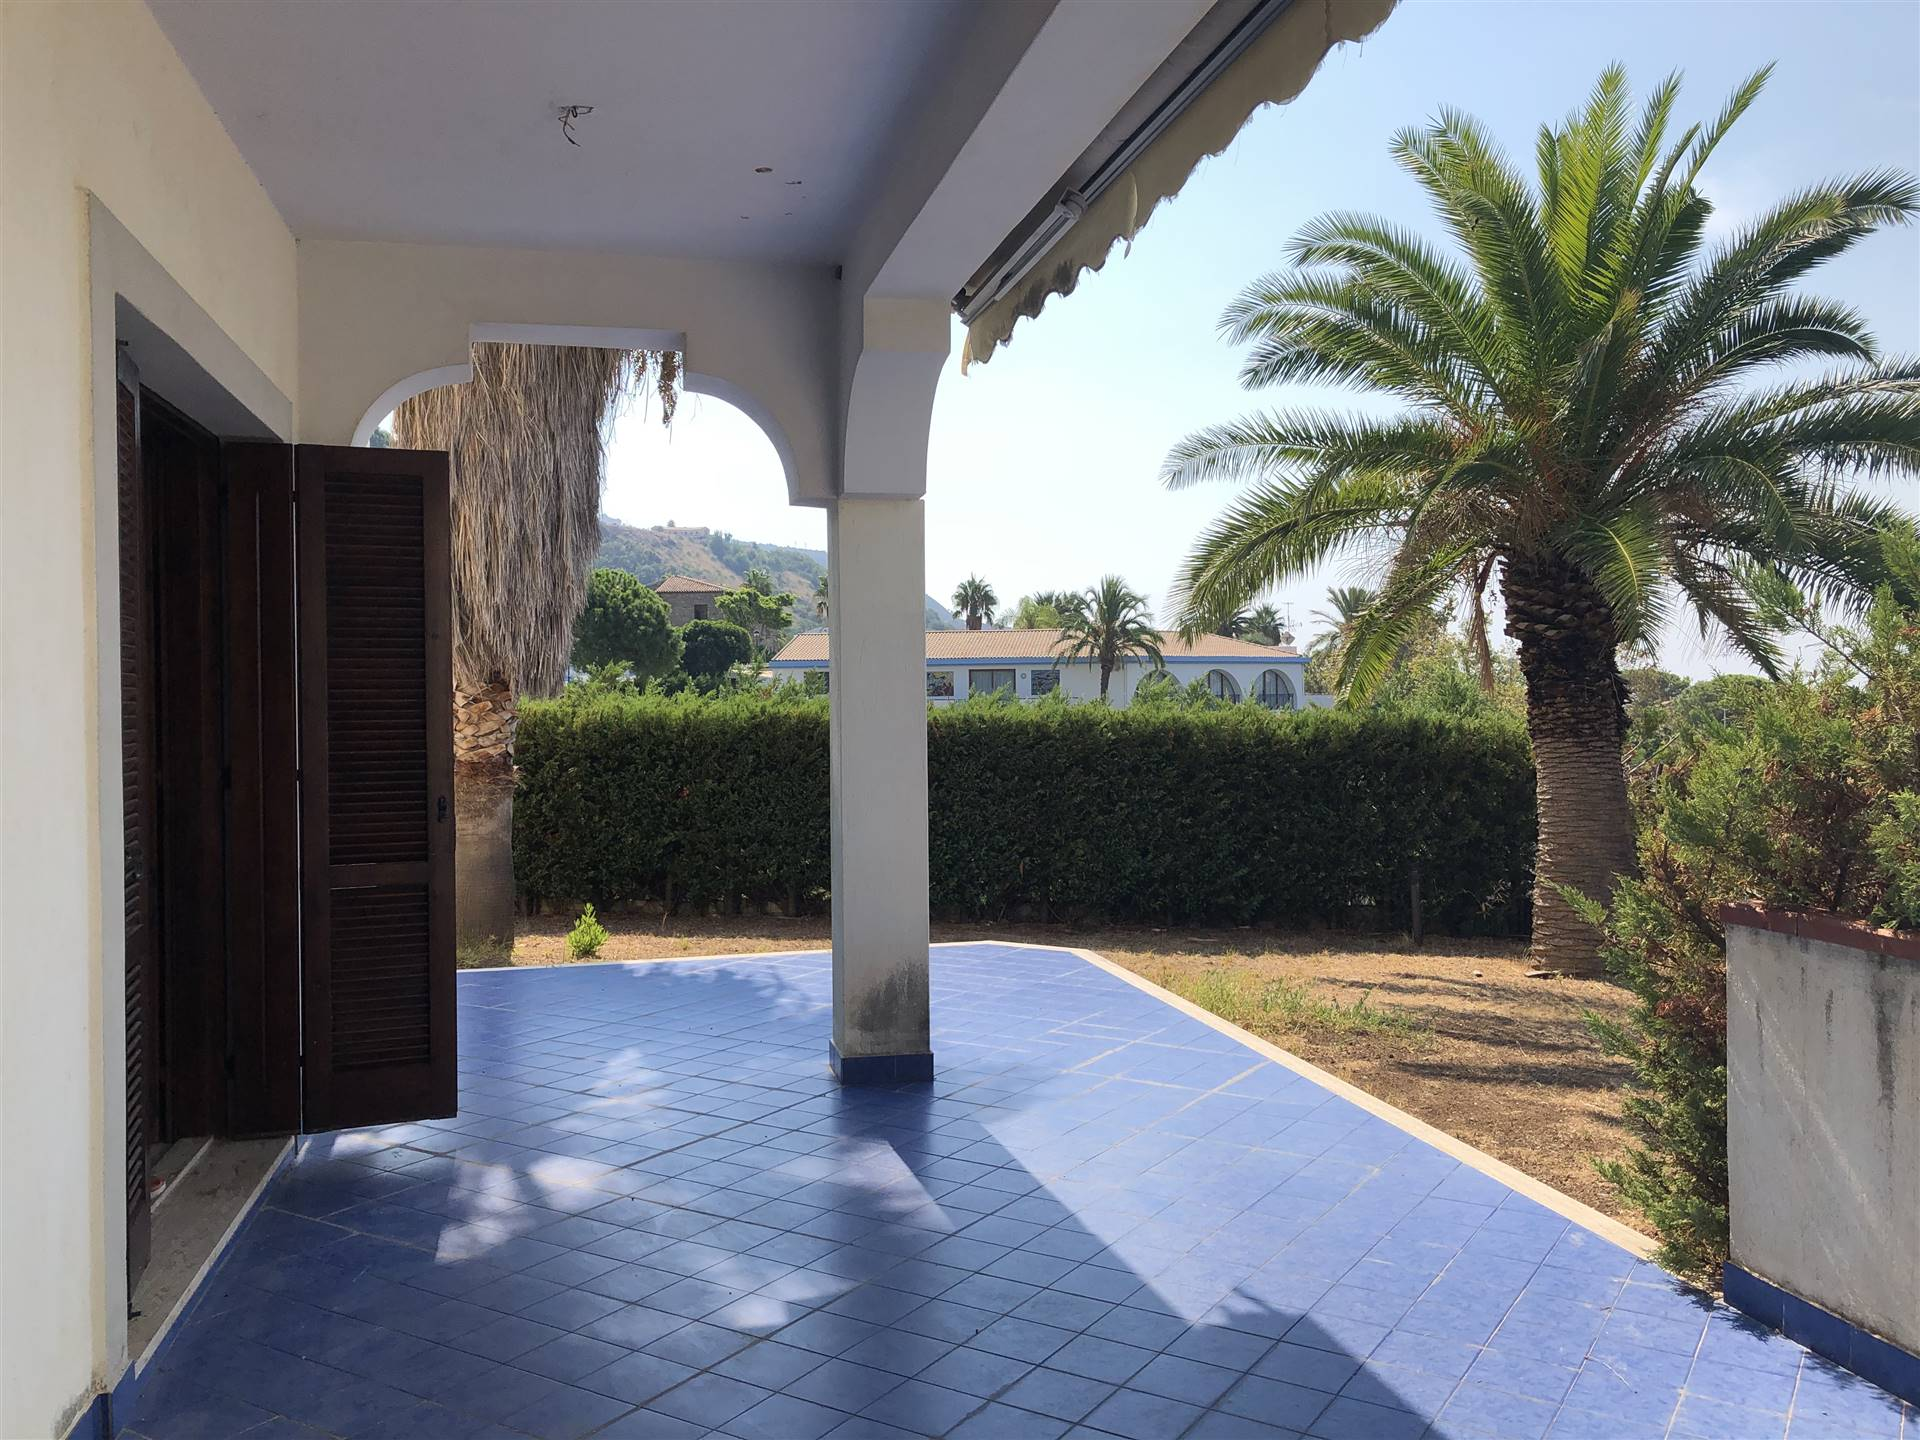 CITTADELLA DEL CAPO, BONIFATI, Duplex villa for sale of 180 Sq. mt., Habitable, Energetic class: G, placed at Ground on 3, composed by: 6 Rooms,